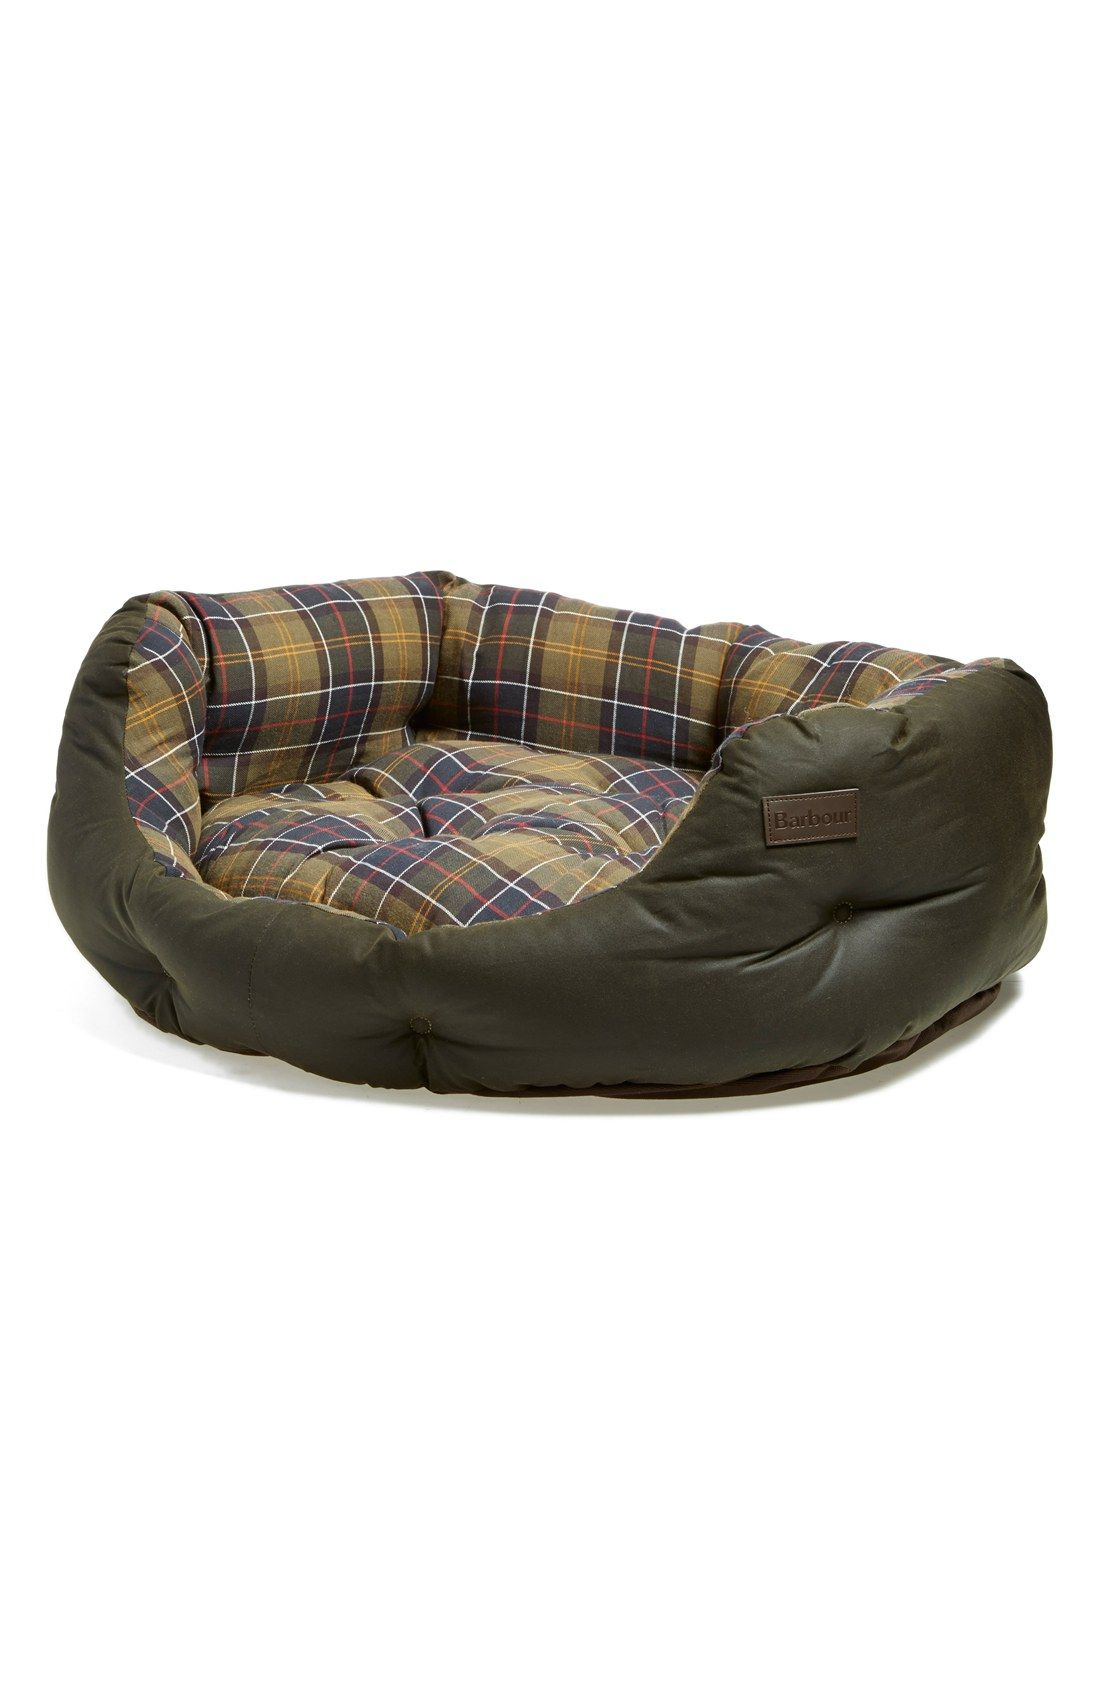 Couldn't forget our furry friend's wishlist! Adoring the sophisticated look this Barbour waxed canvas dog bed has to offer. They'll be snugging, snoring and dreaming in style come Christmas night.